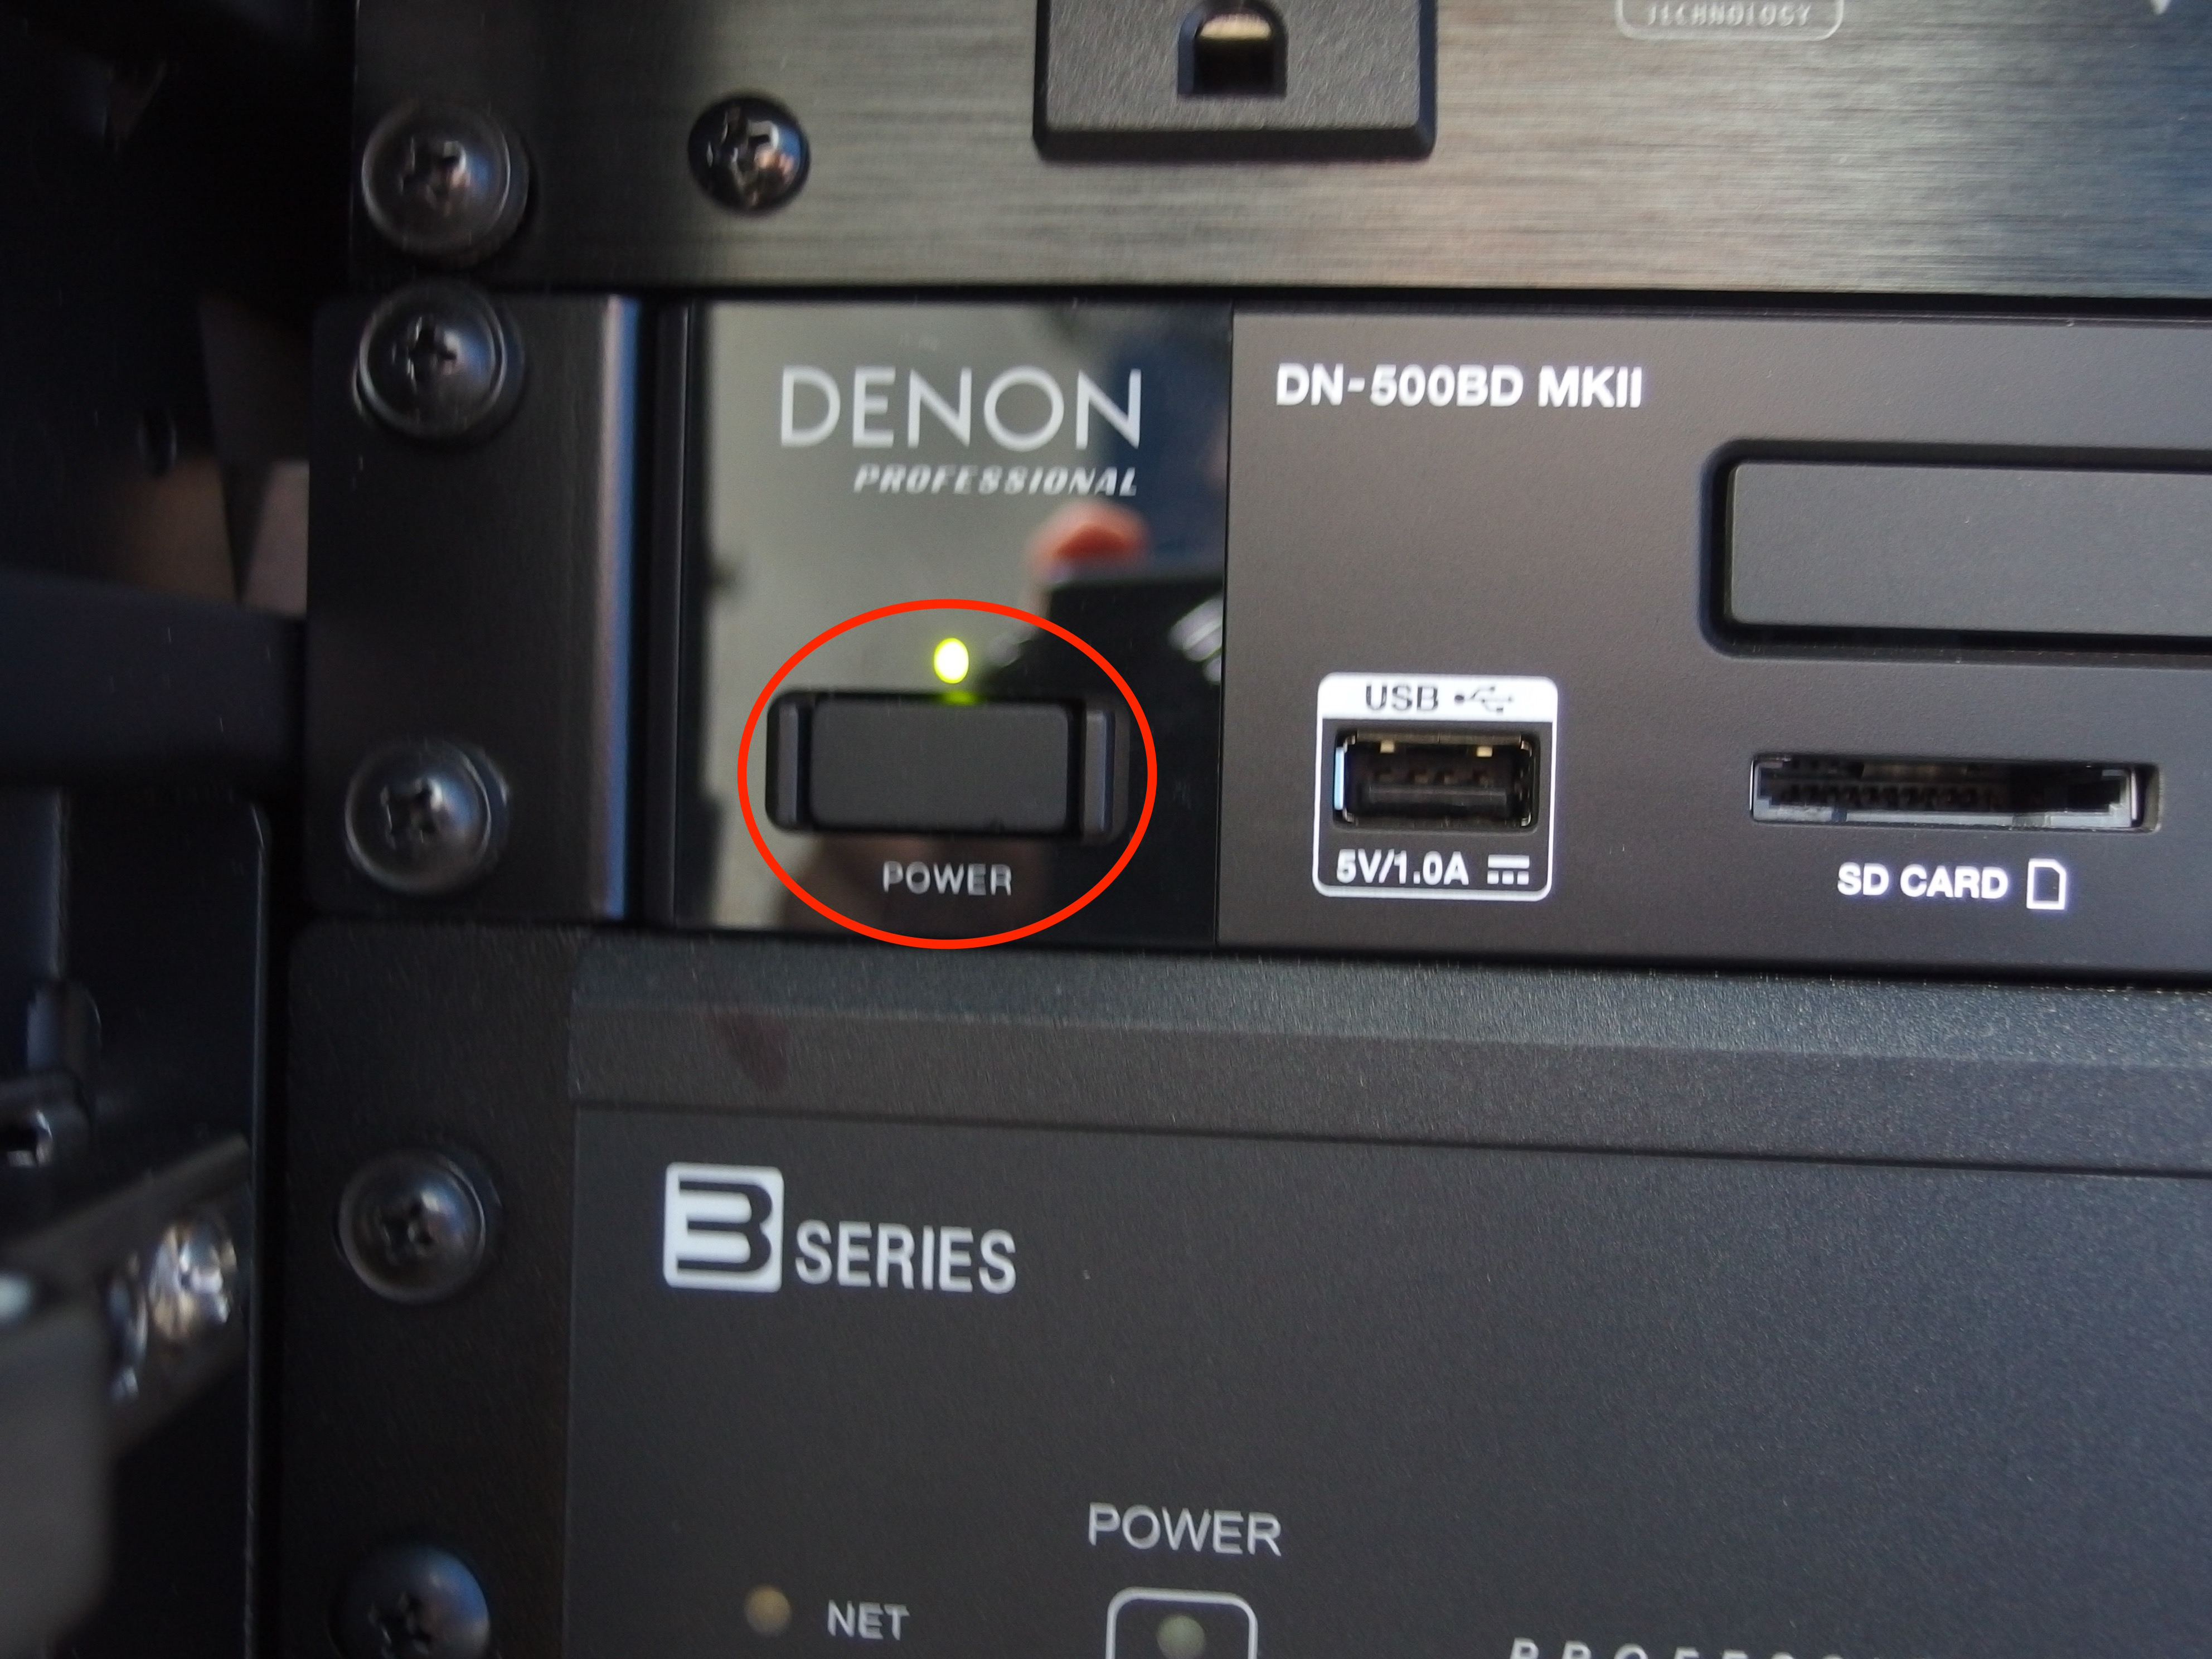 A photo of the dvd power button